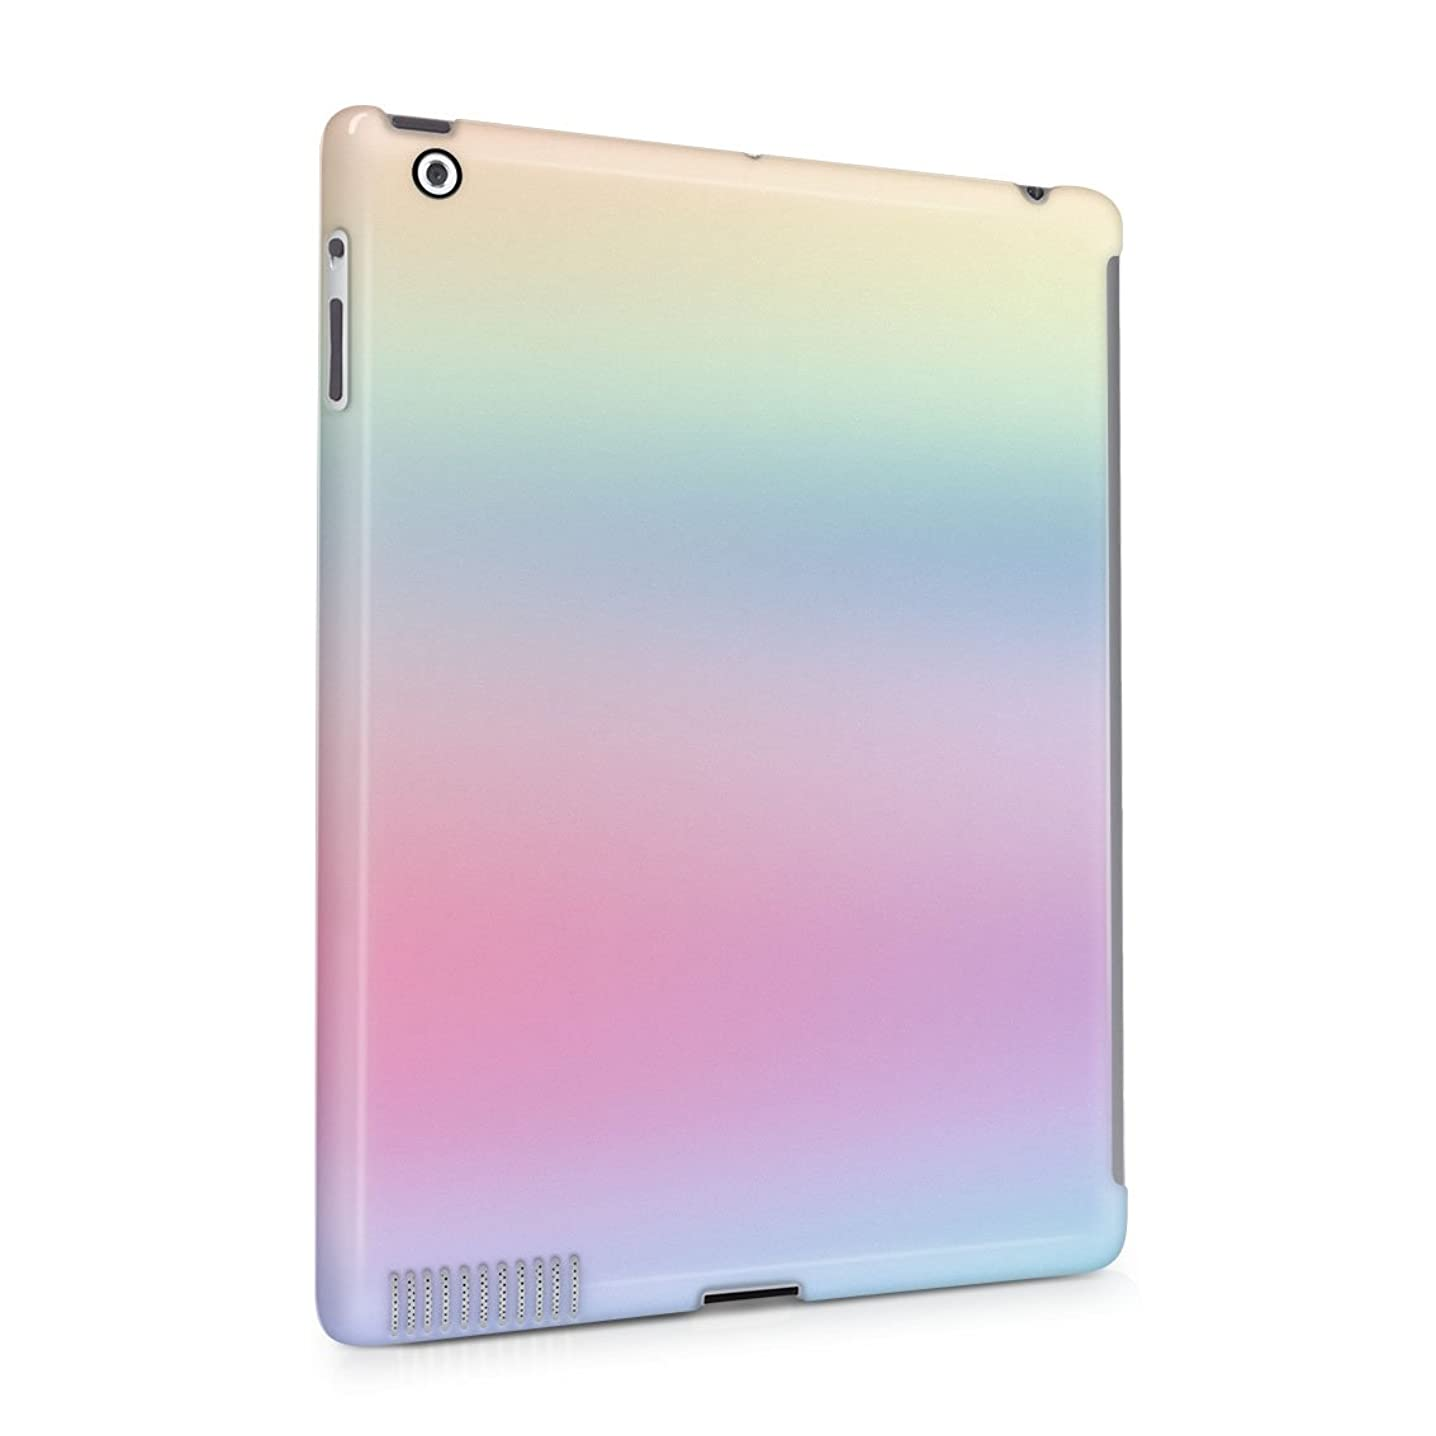 Trippy Rainbow Color Spectrum Plastic Tablet Snap On Back Cover Shell For iPad 2 & iPad 3 & iPad 4